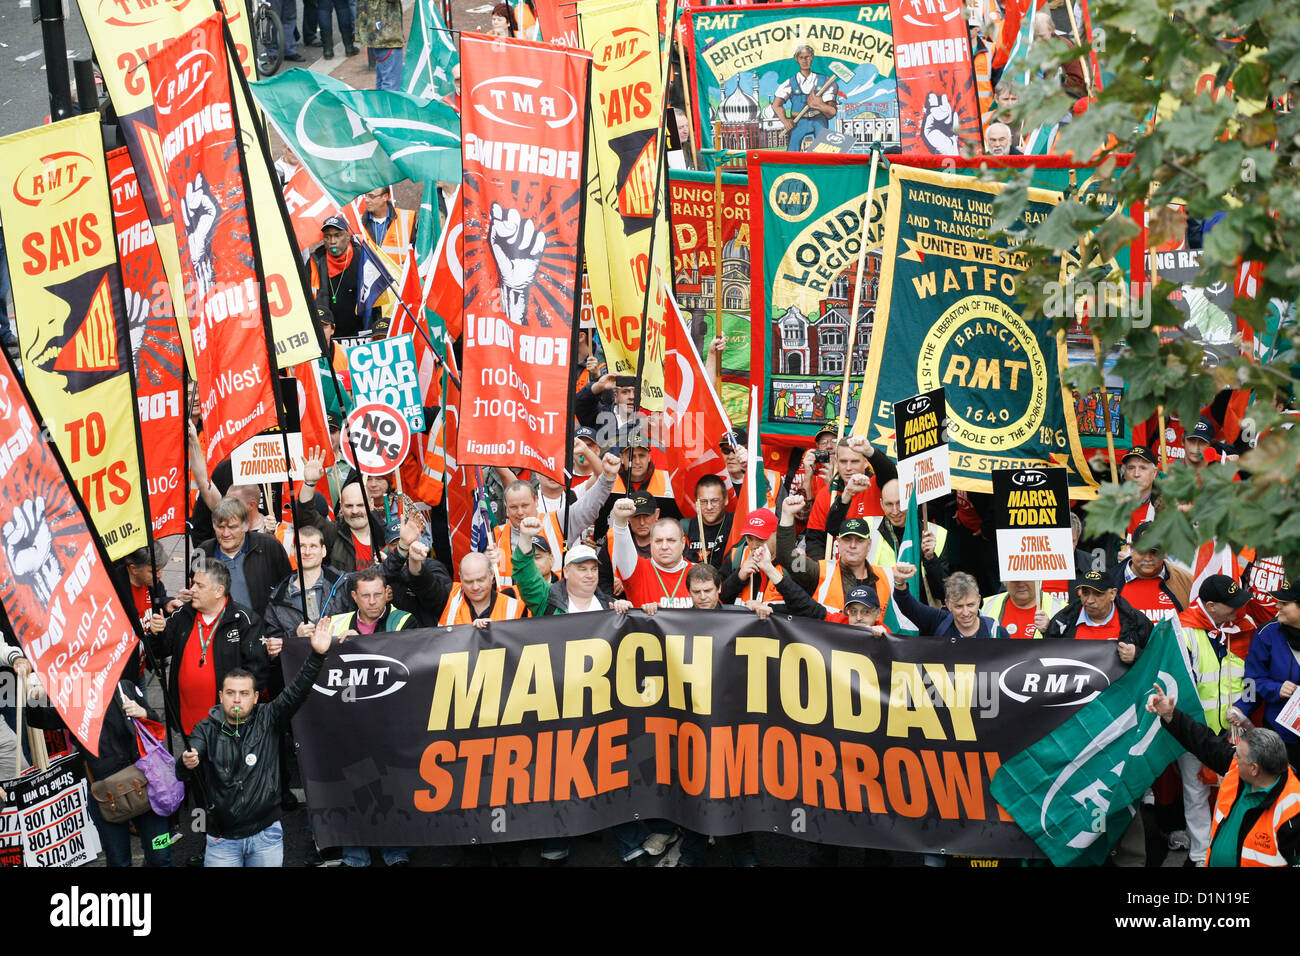 The march moves along the Embankment, 10s of thousands turned out to demonstrate against the Government's cuts. - Stock Image